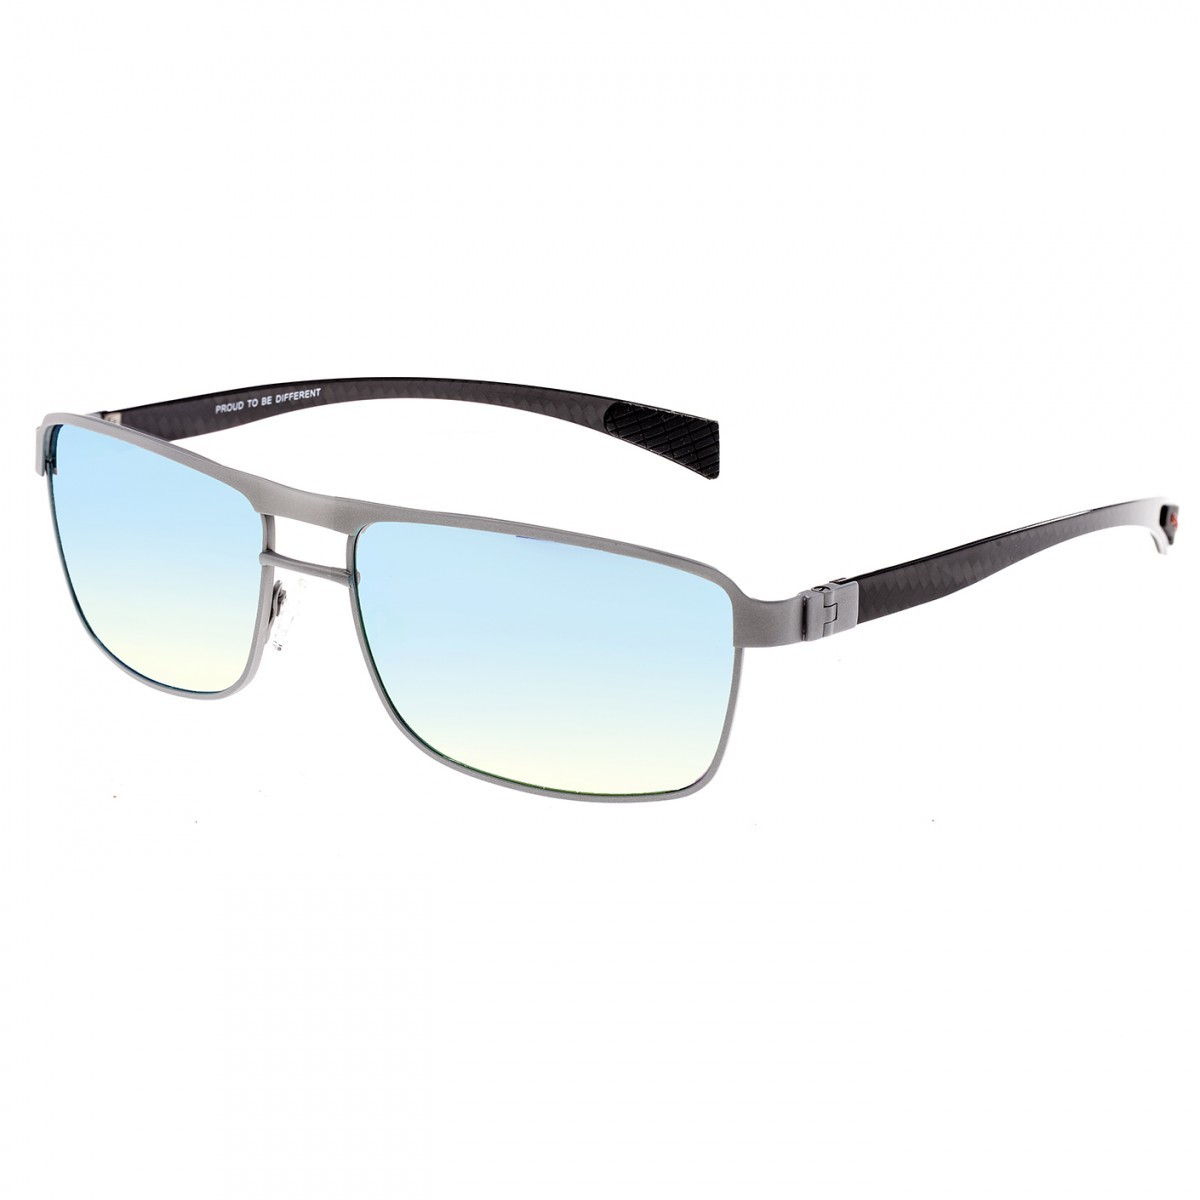 f16bd20fc5654 Breed Taurus Titanium and Carbon Fiber Polarized Sunglasses - Silver Gold  BSG005SR